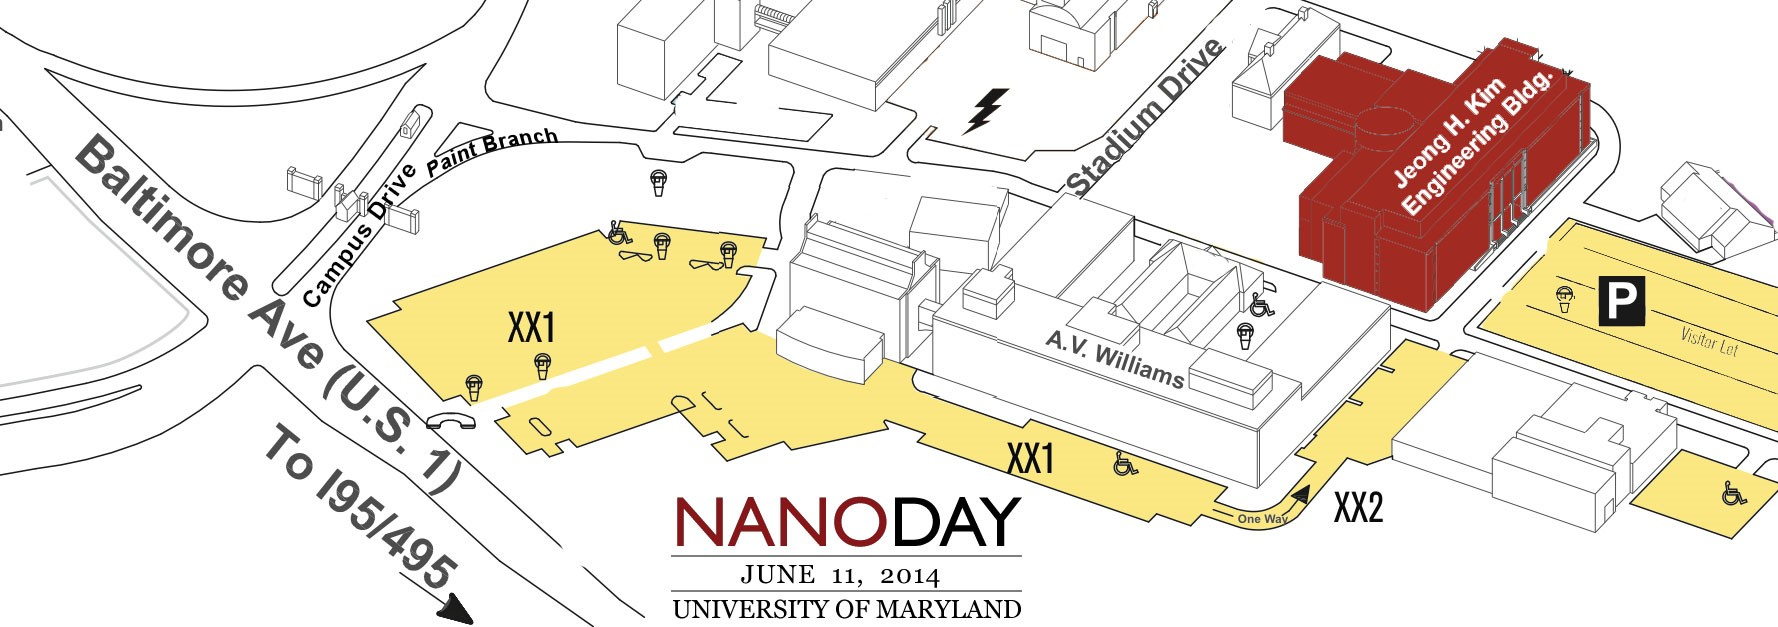 NanoDay 2014 Parking Map